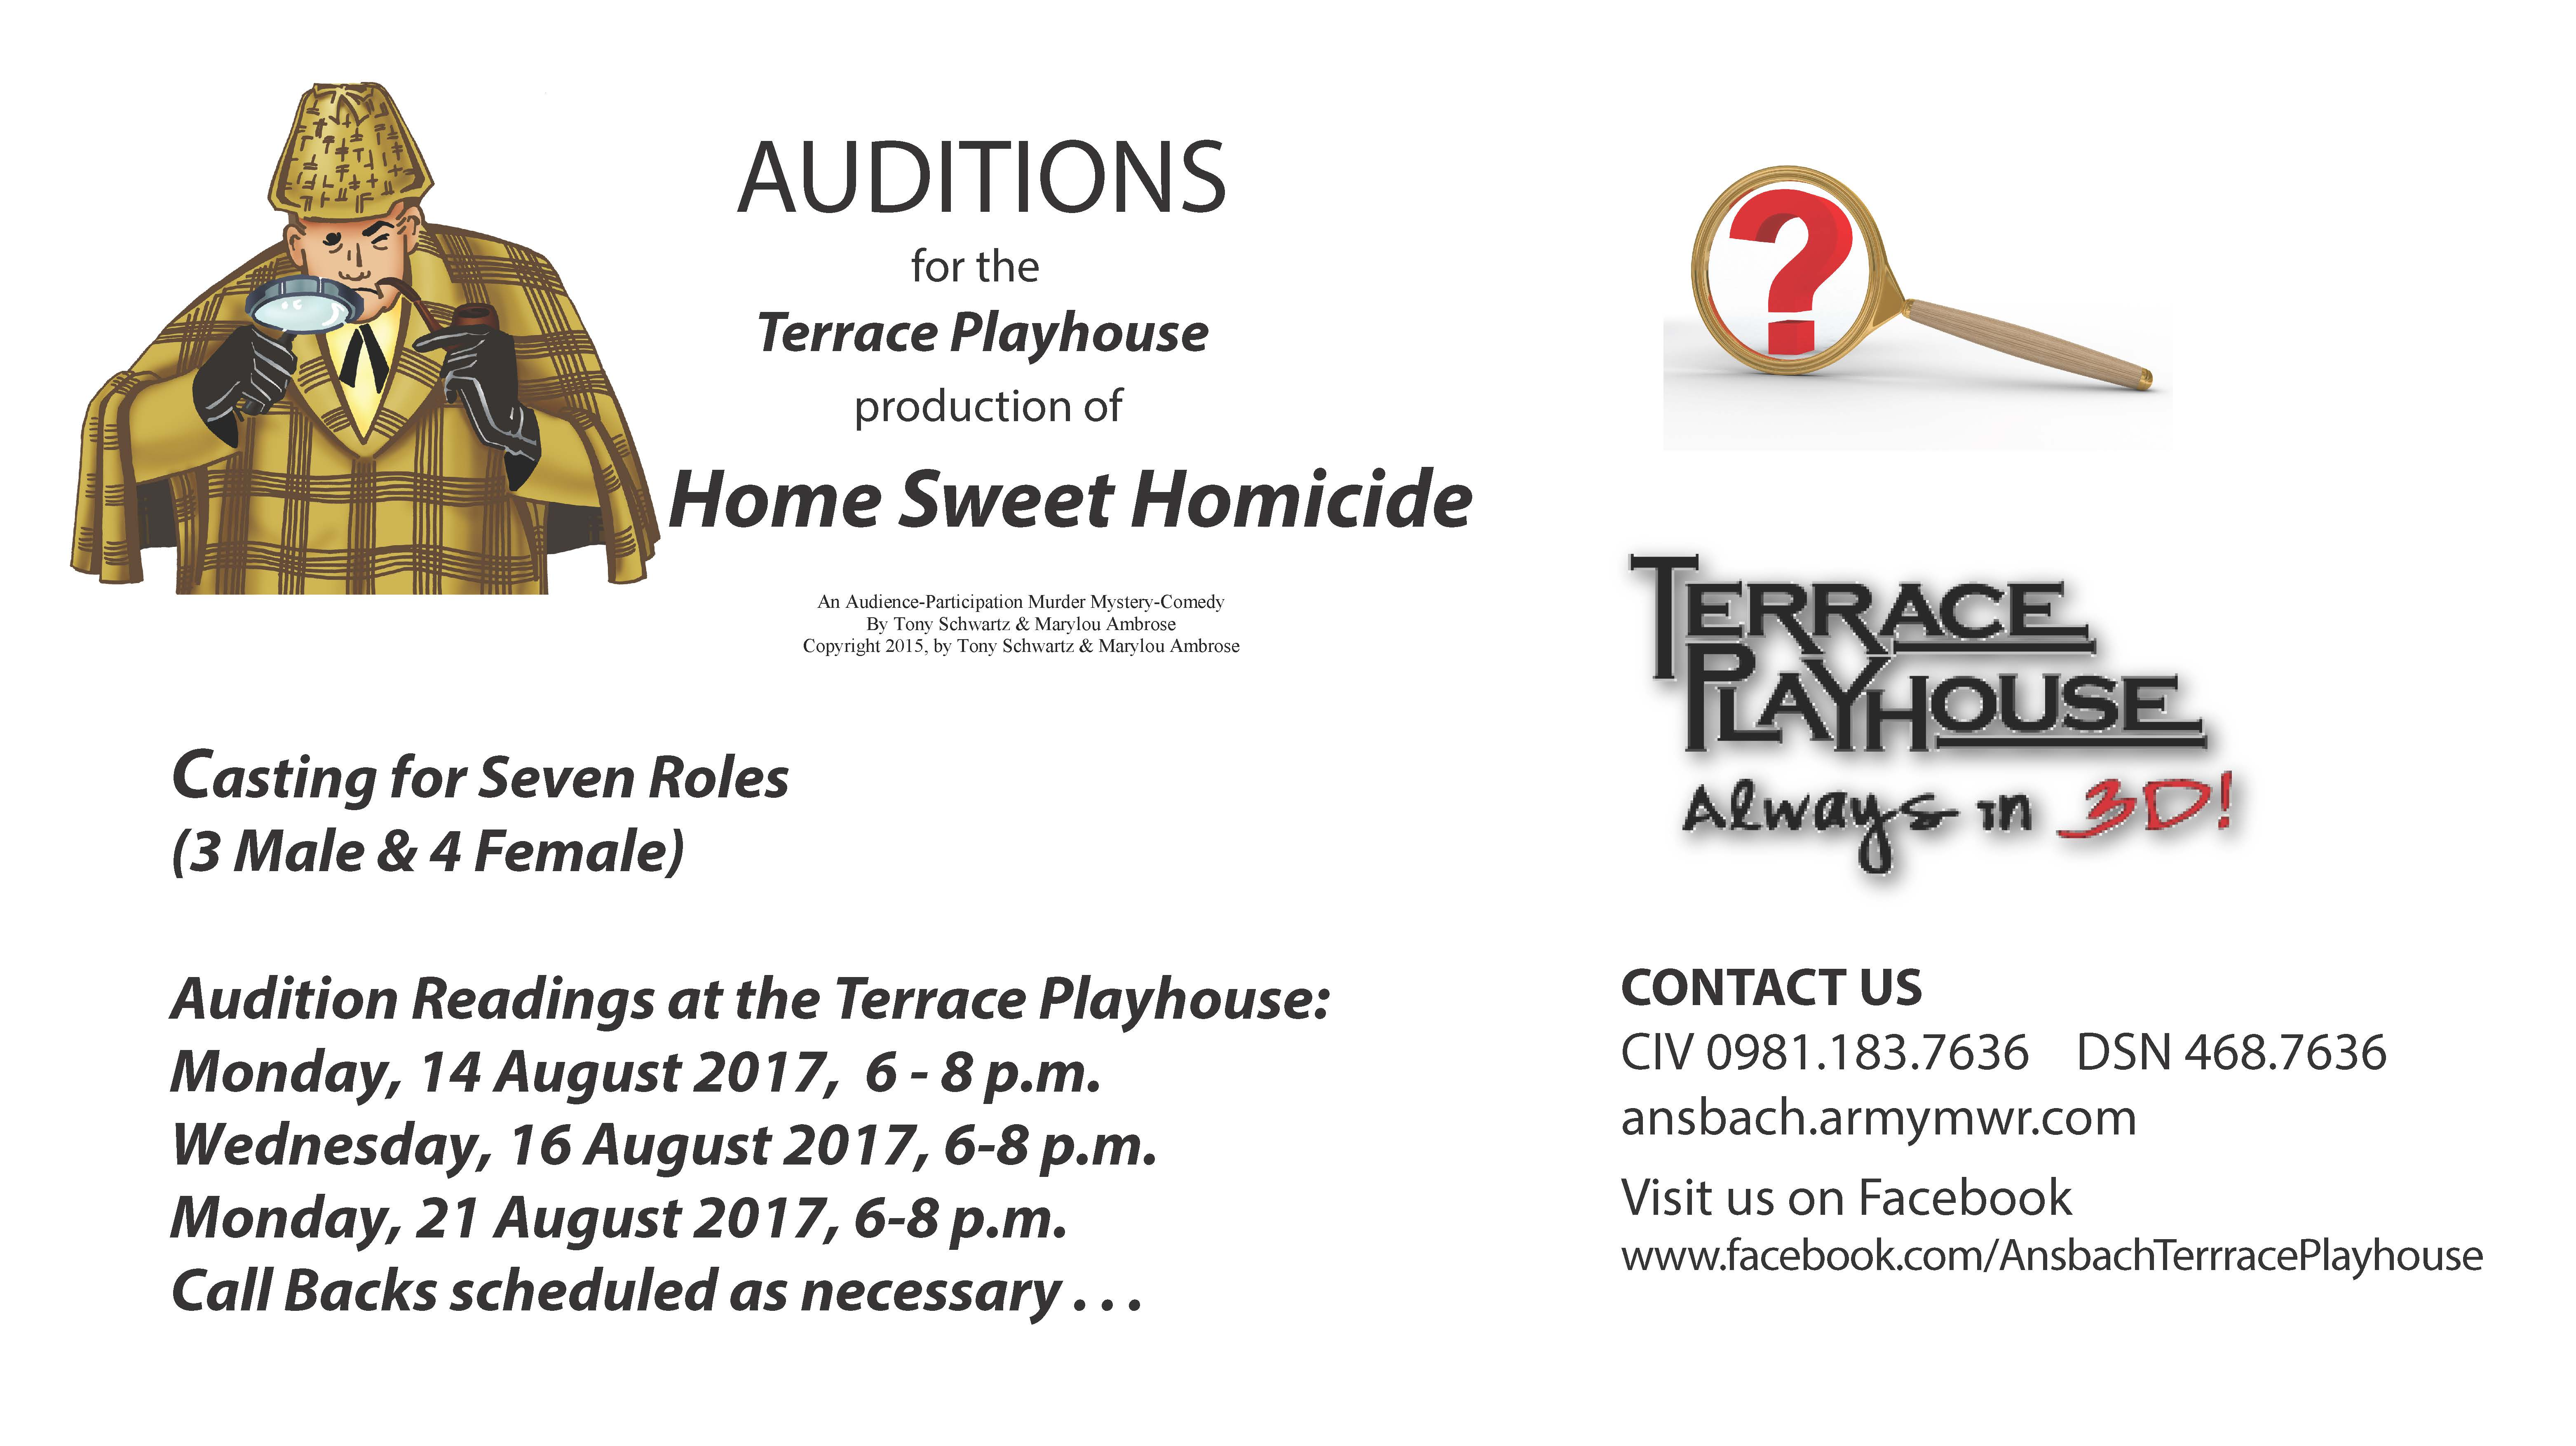 Auditions - Home Sweet Homicide